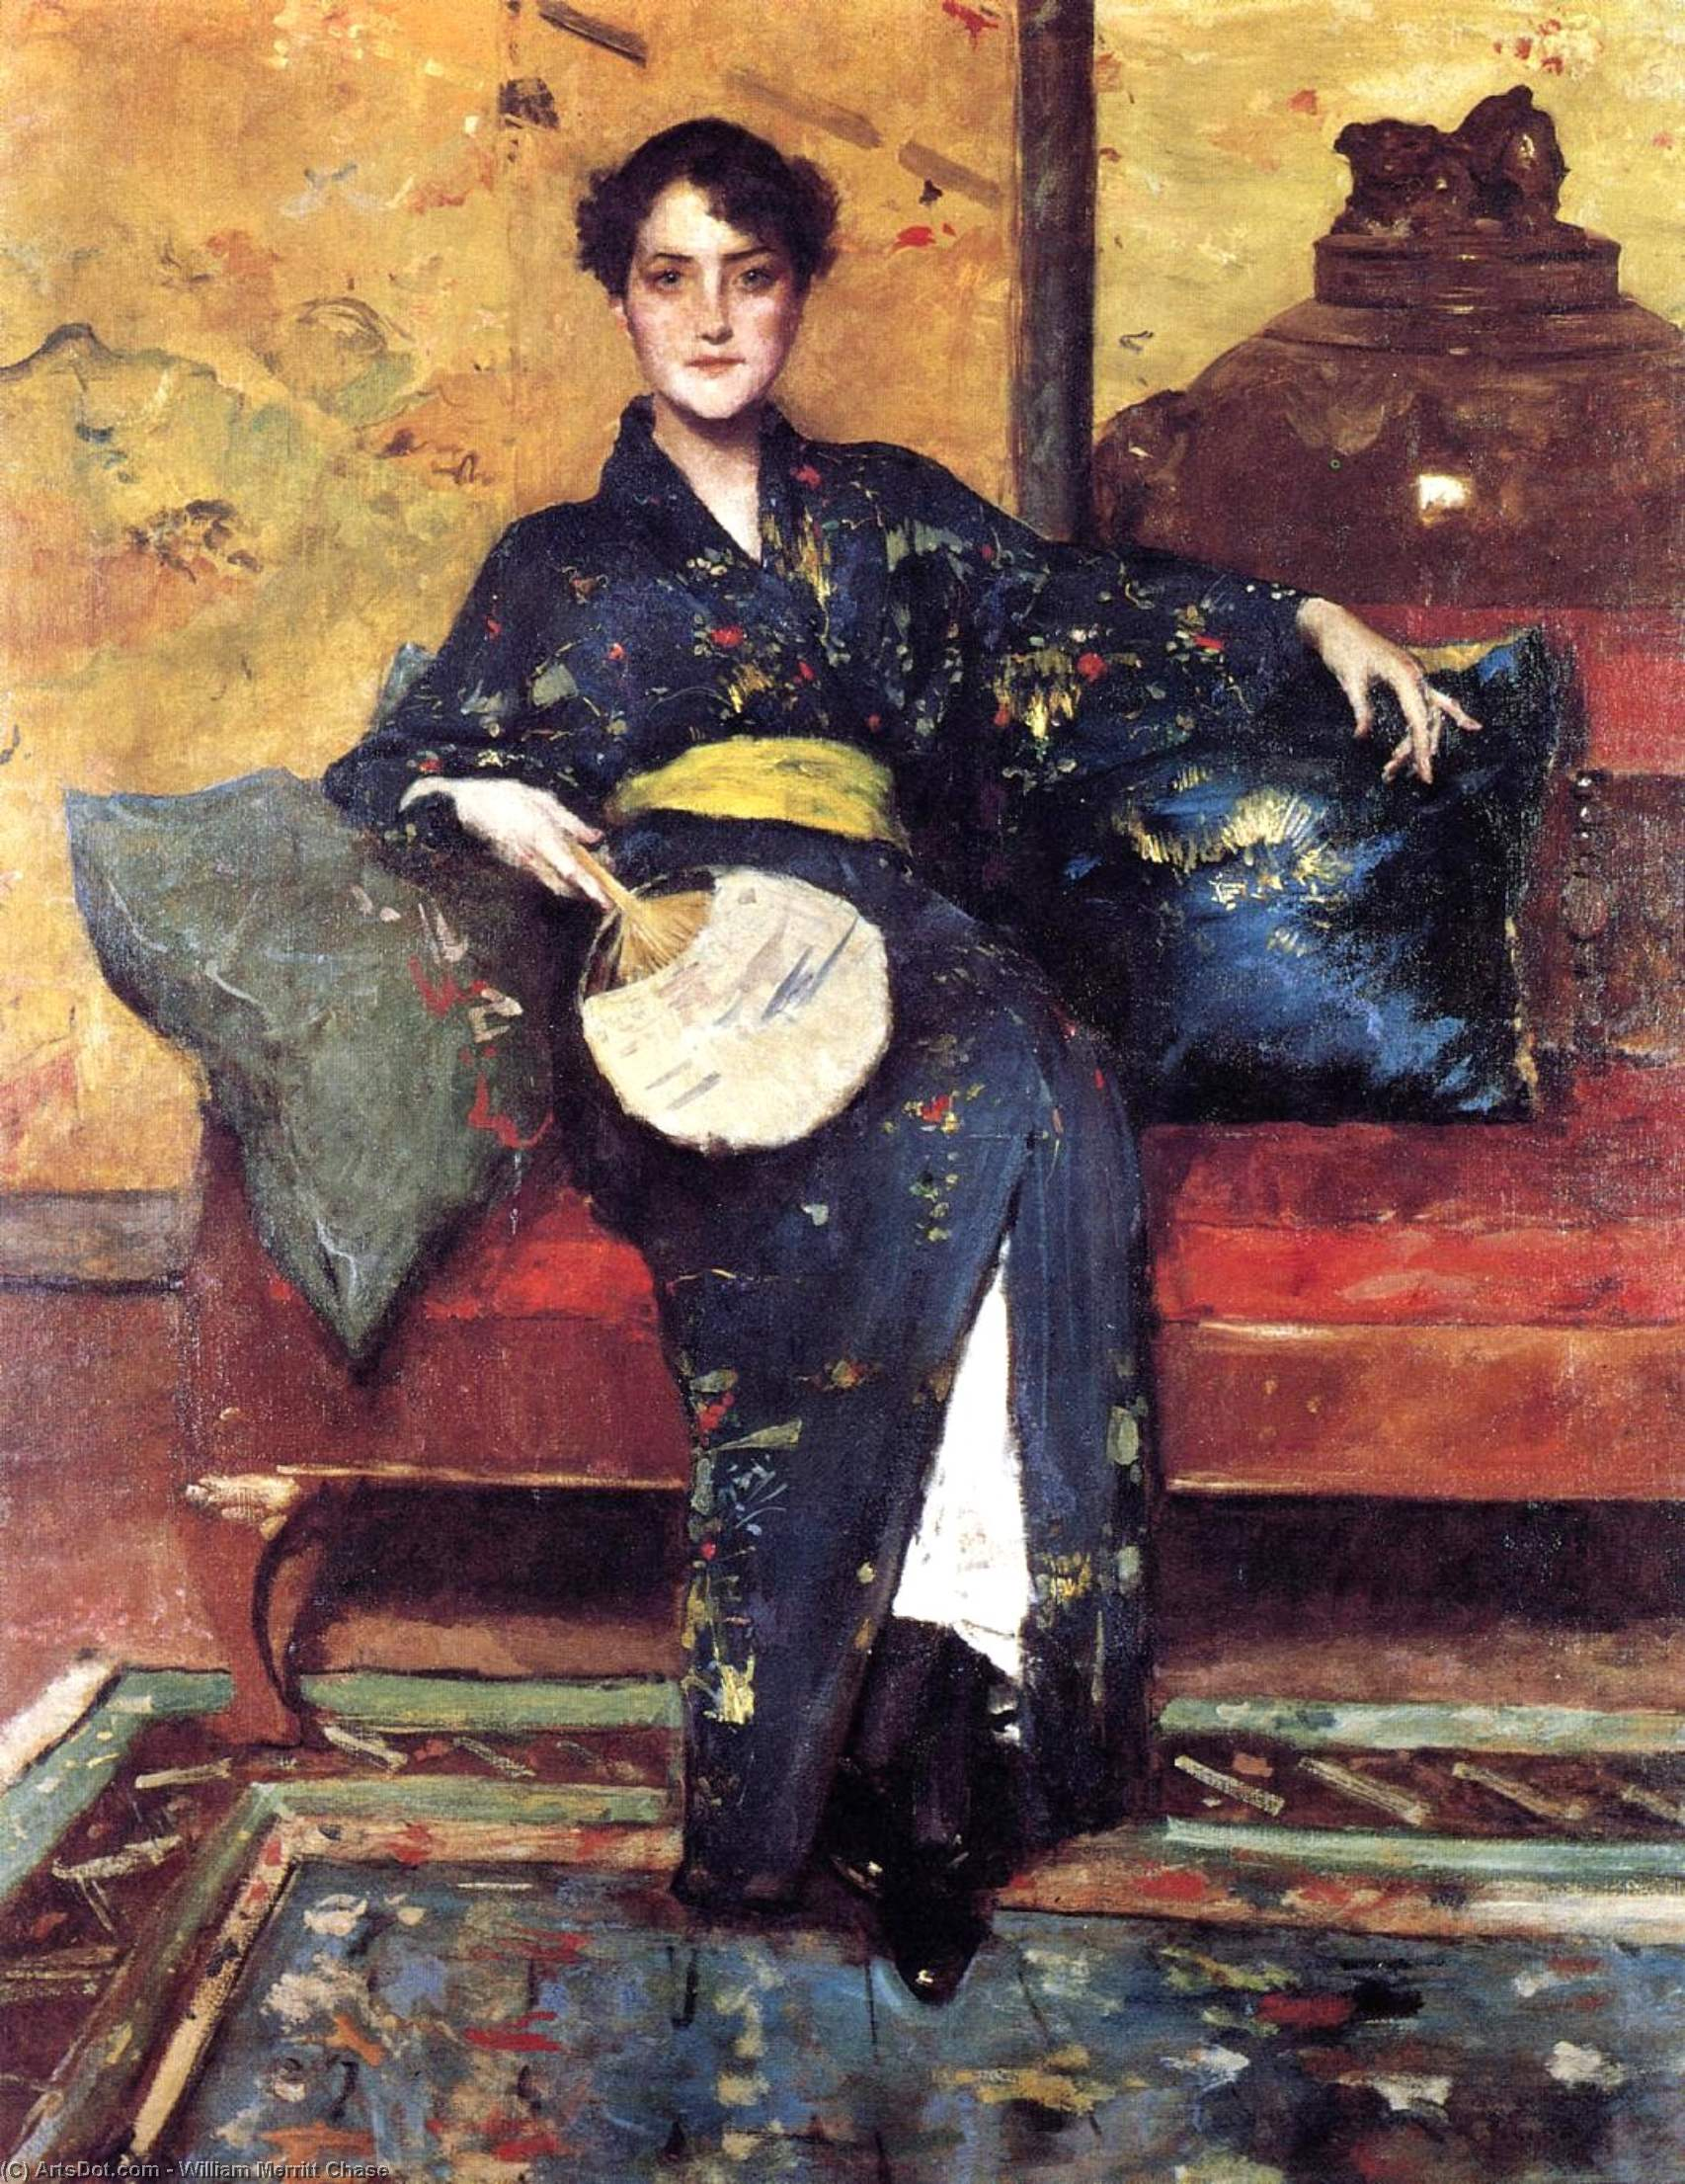 il blu Chimono , aka ragazza in blu kimono, olio su tela di William Merritt Chase (1849-1916, United States)